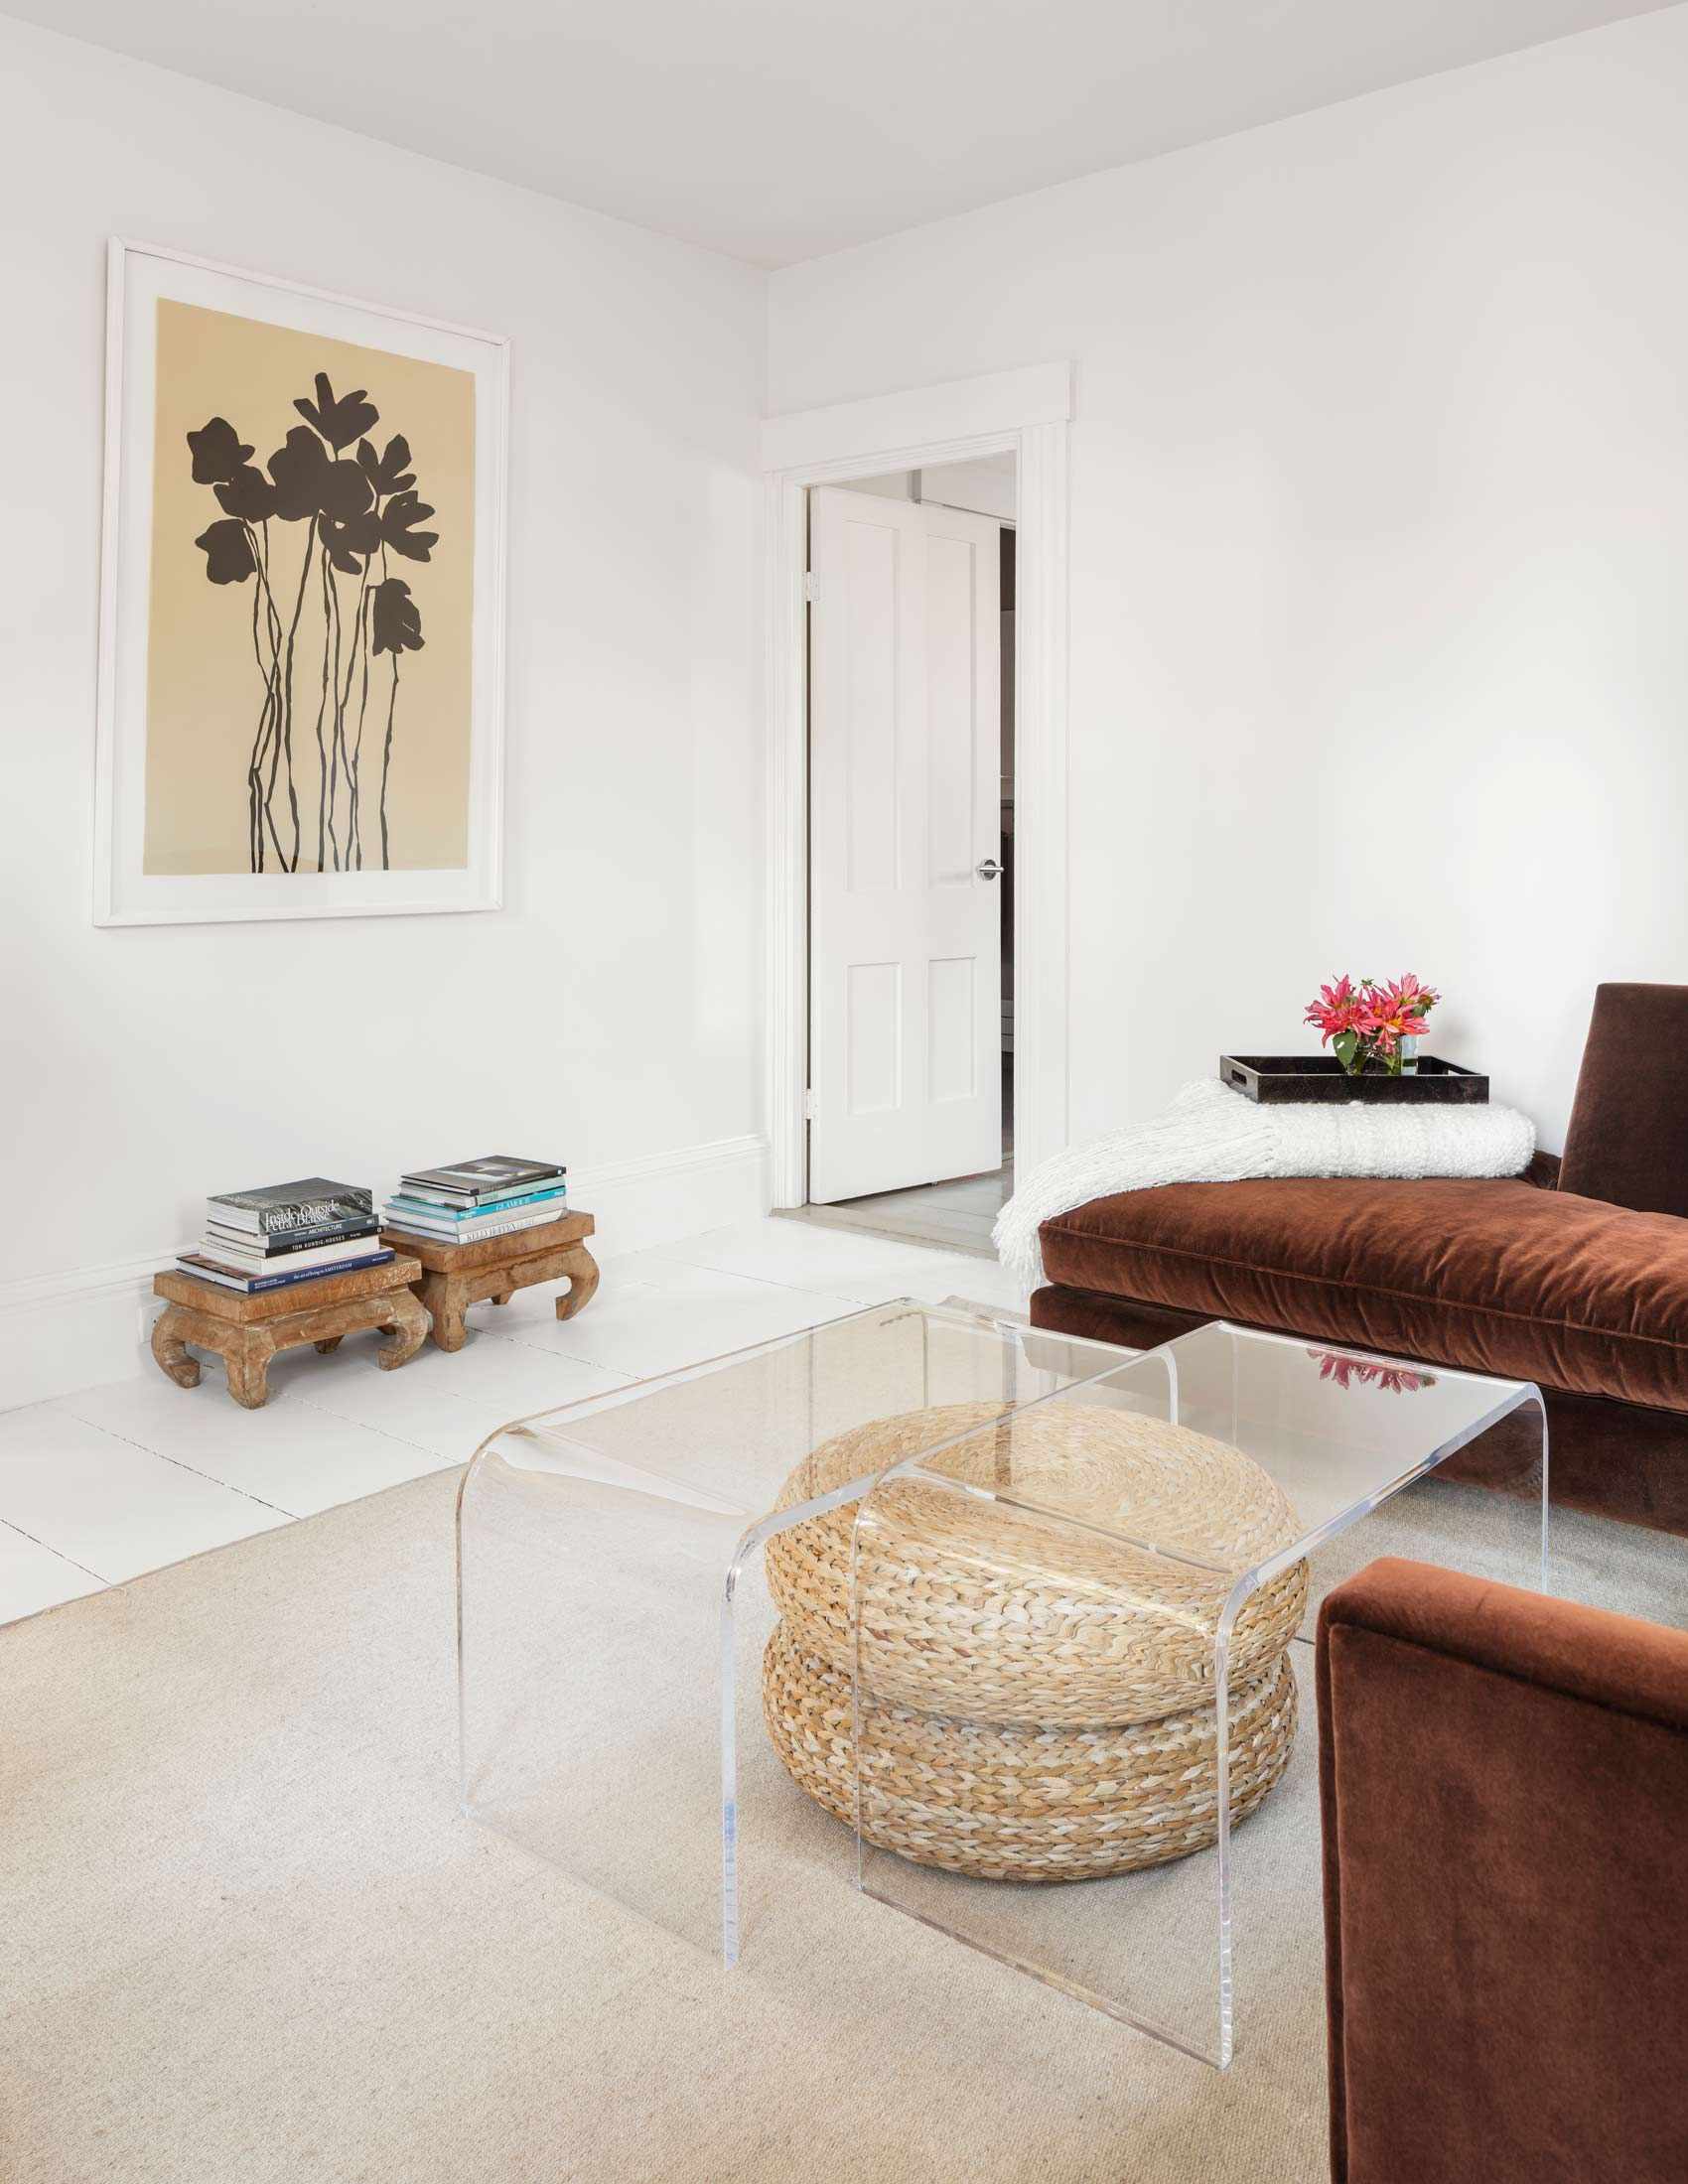 The mix of items in the living room includes two acrylic tables offset for interest, a rattan foot stool from IKEA, and teak Indonesian prayer stools. The black ink painting is by Susan Havel Smith.